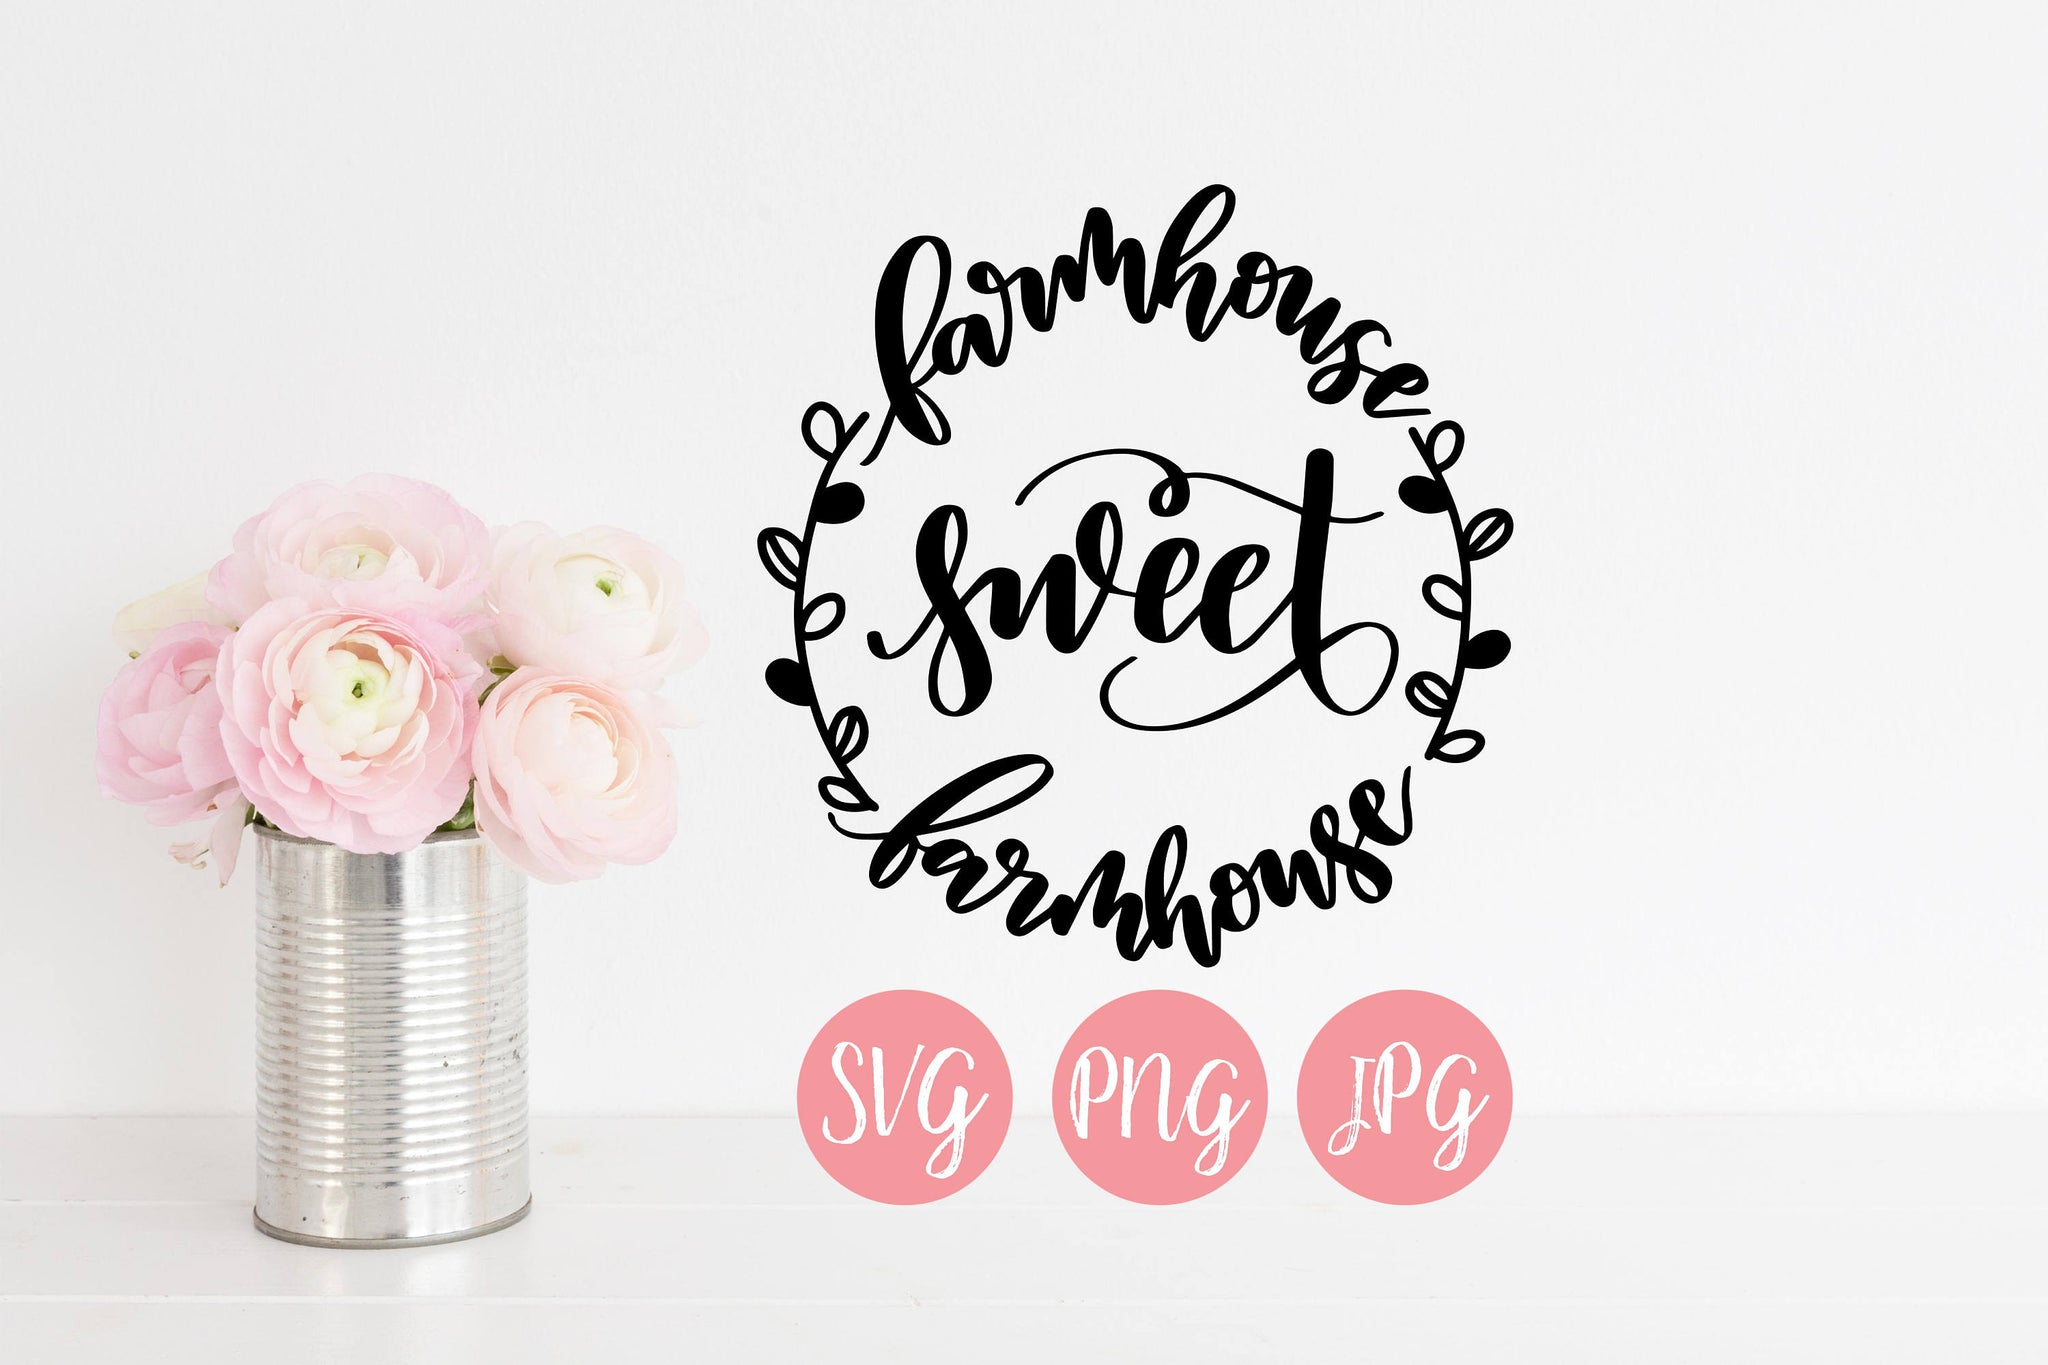 Farmhouse Sweet Farmhouse Hand Lettered SVG PNG JPEG - The Chaotically Creative Mom